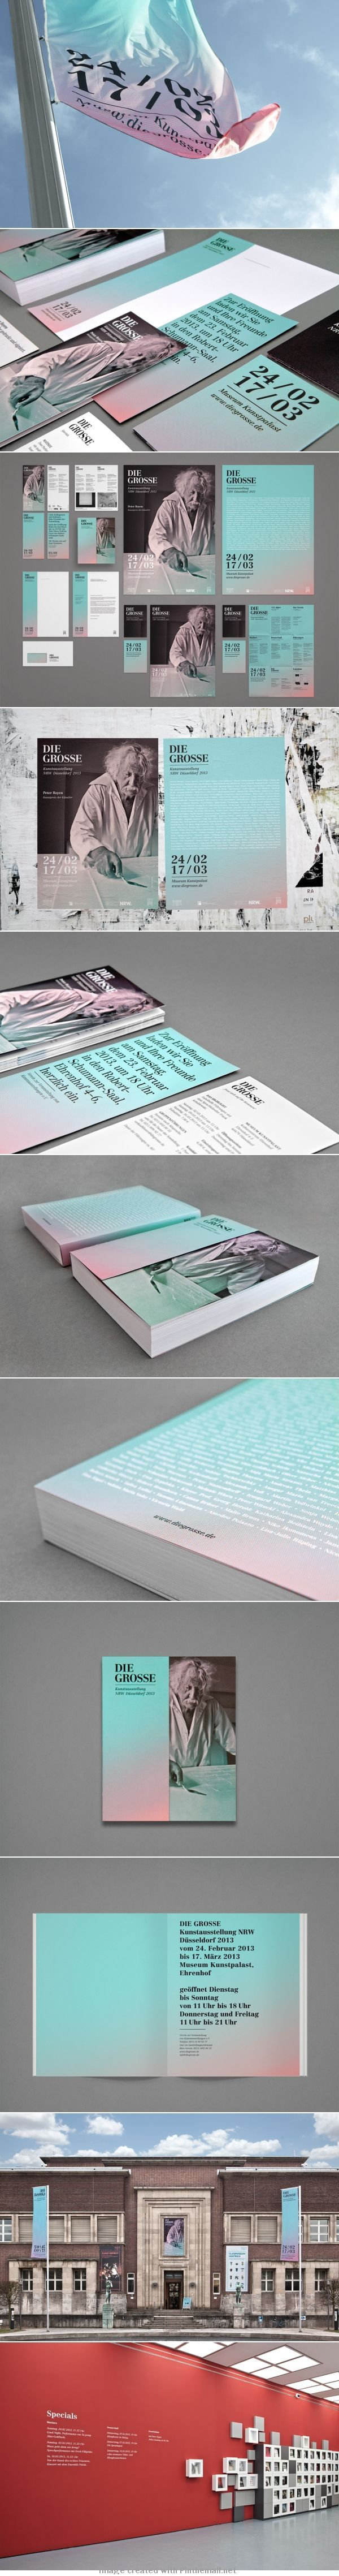 Visual identity and exhibition design. Lovely faded colors and black and white photo combination